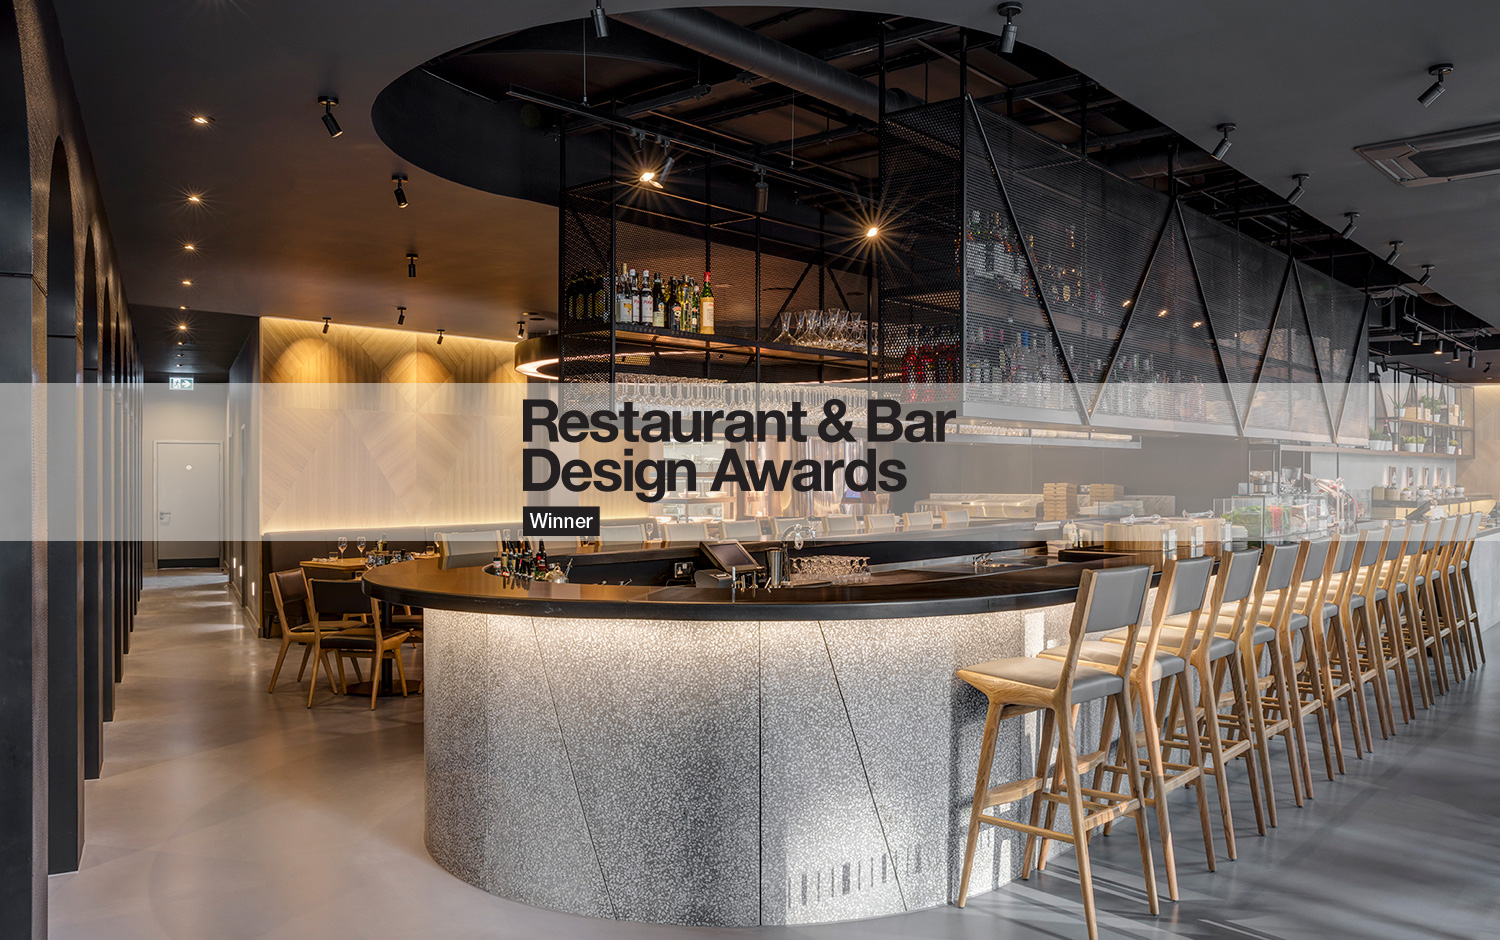 Restaurant and bar design award obicà mozzarella